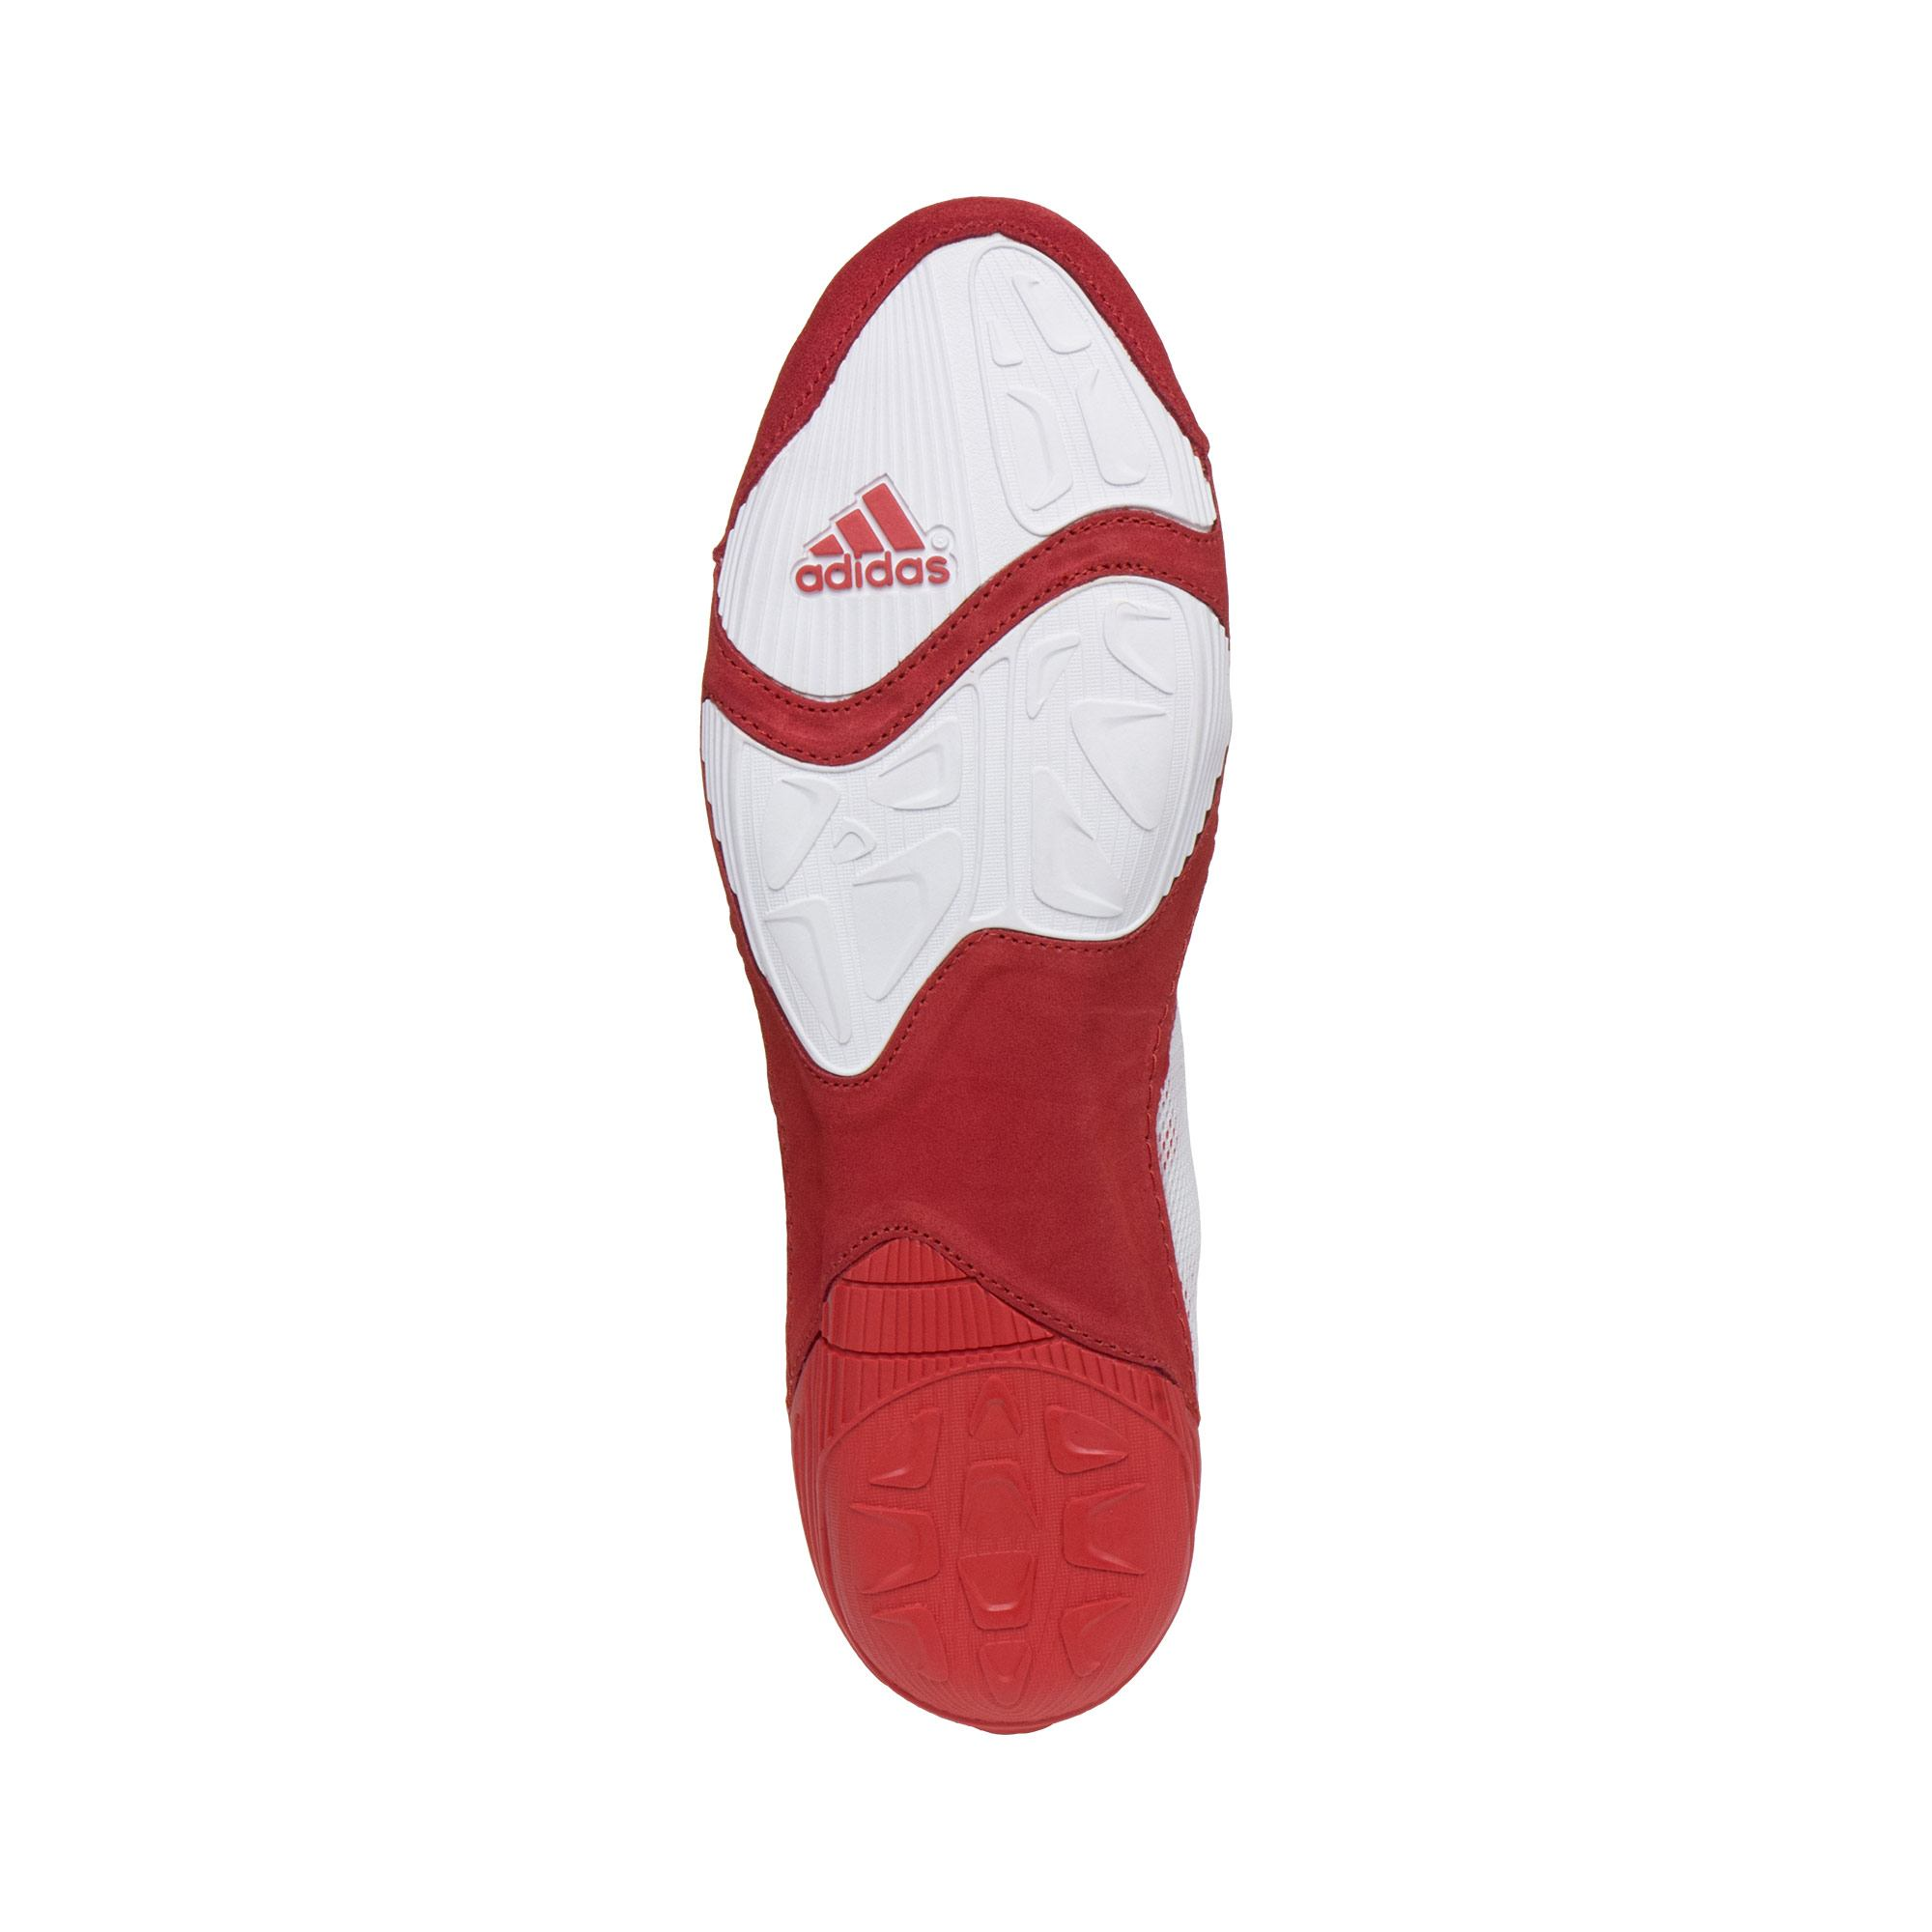 ... backAdidas Pretereo 3 Red Silver White sole 0f70138e6